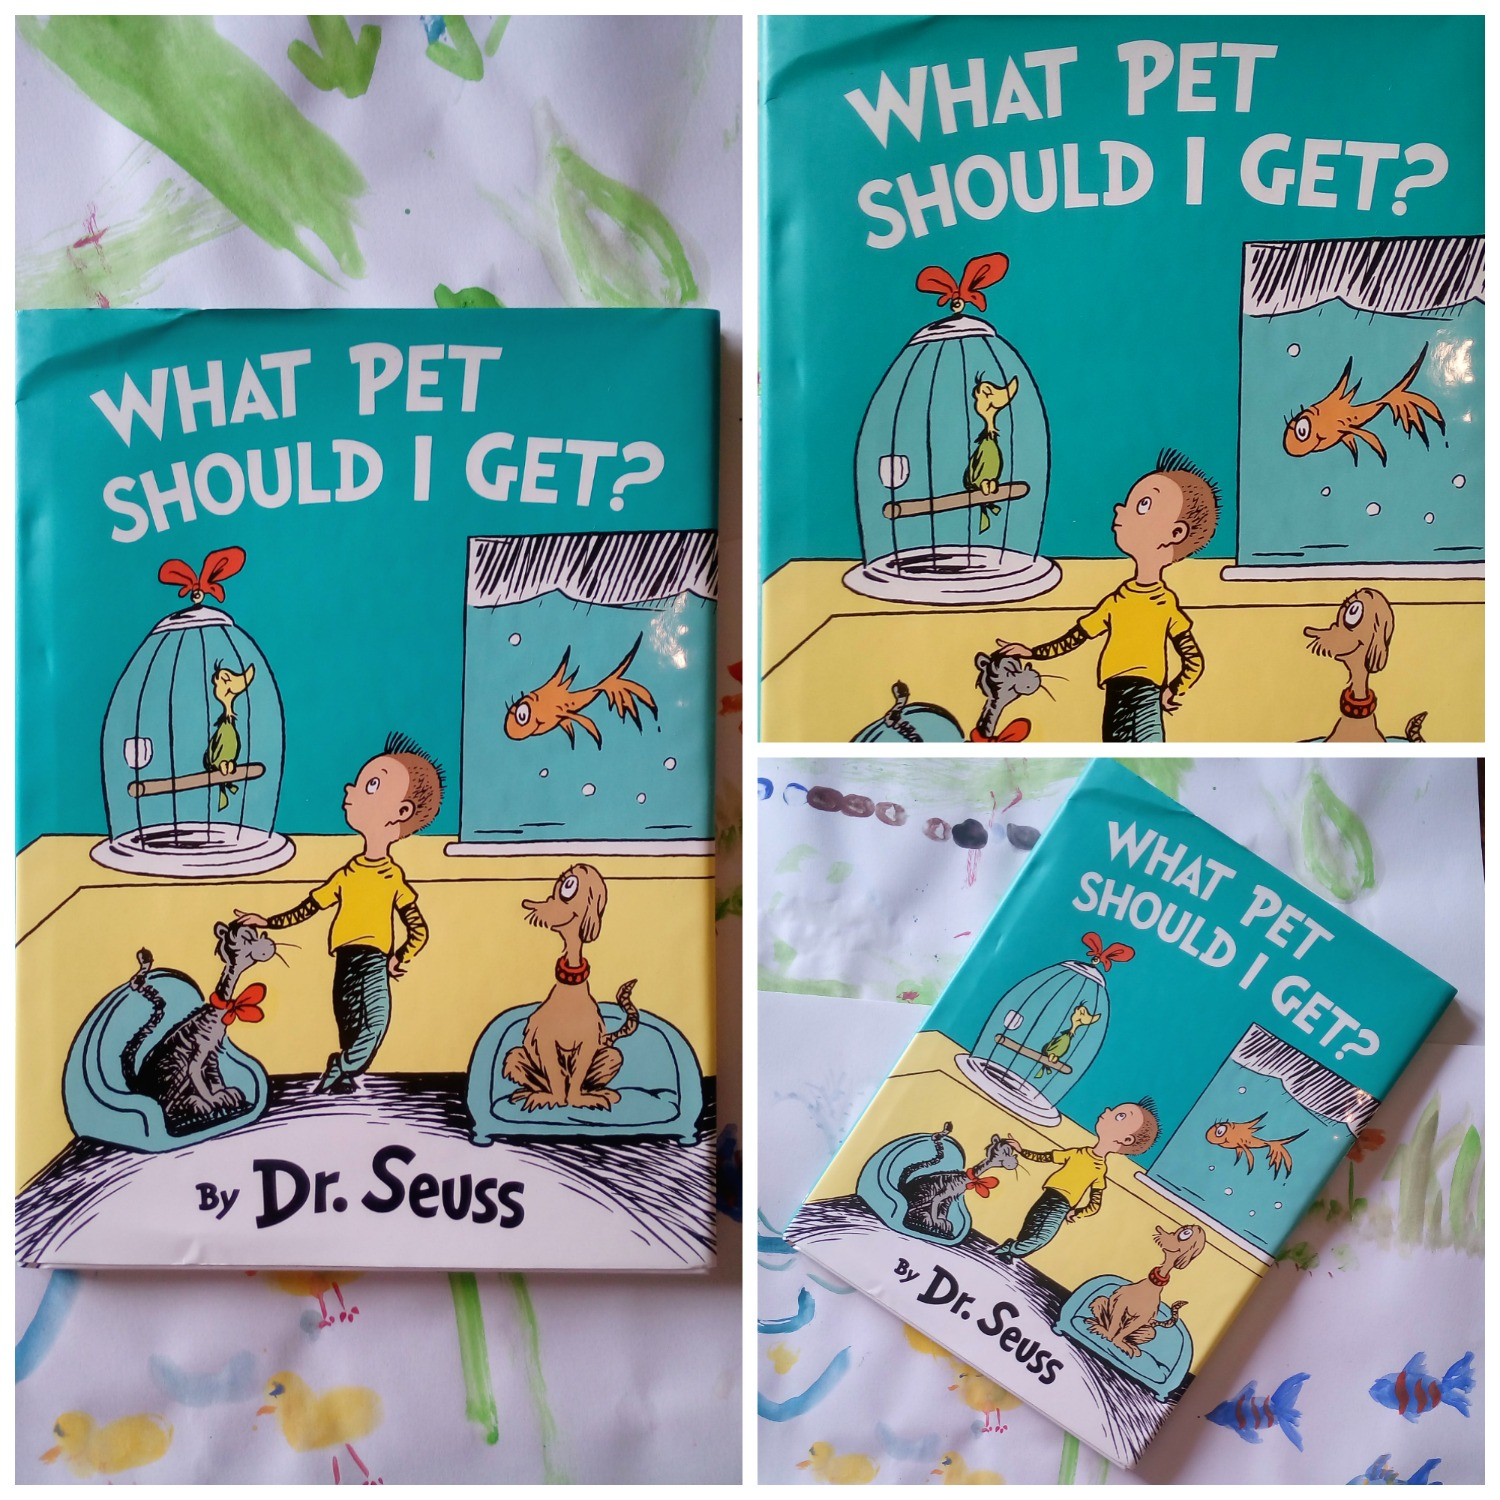 What Pet Should I Get? By Dr Suess